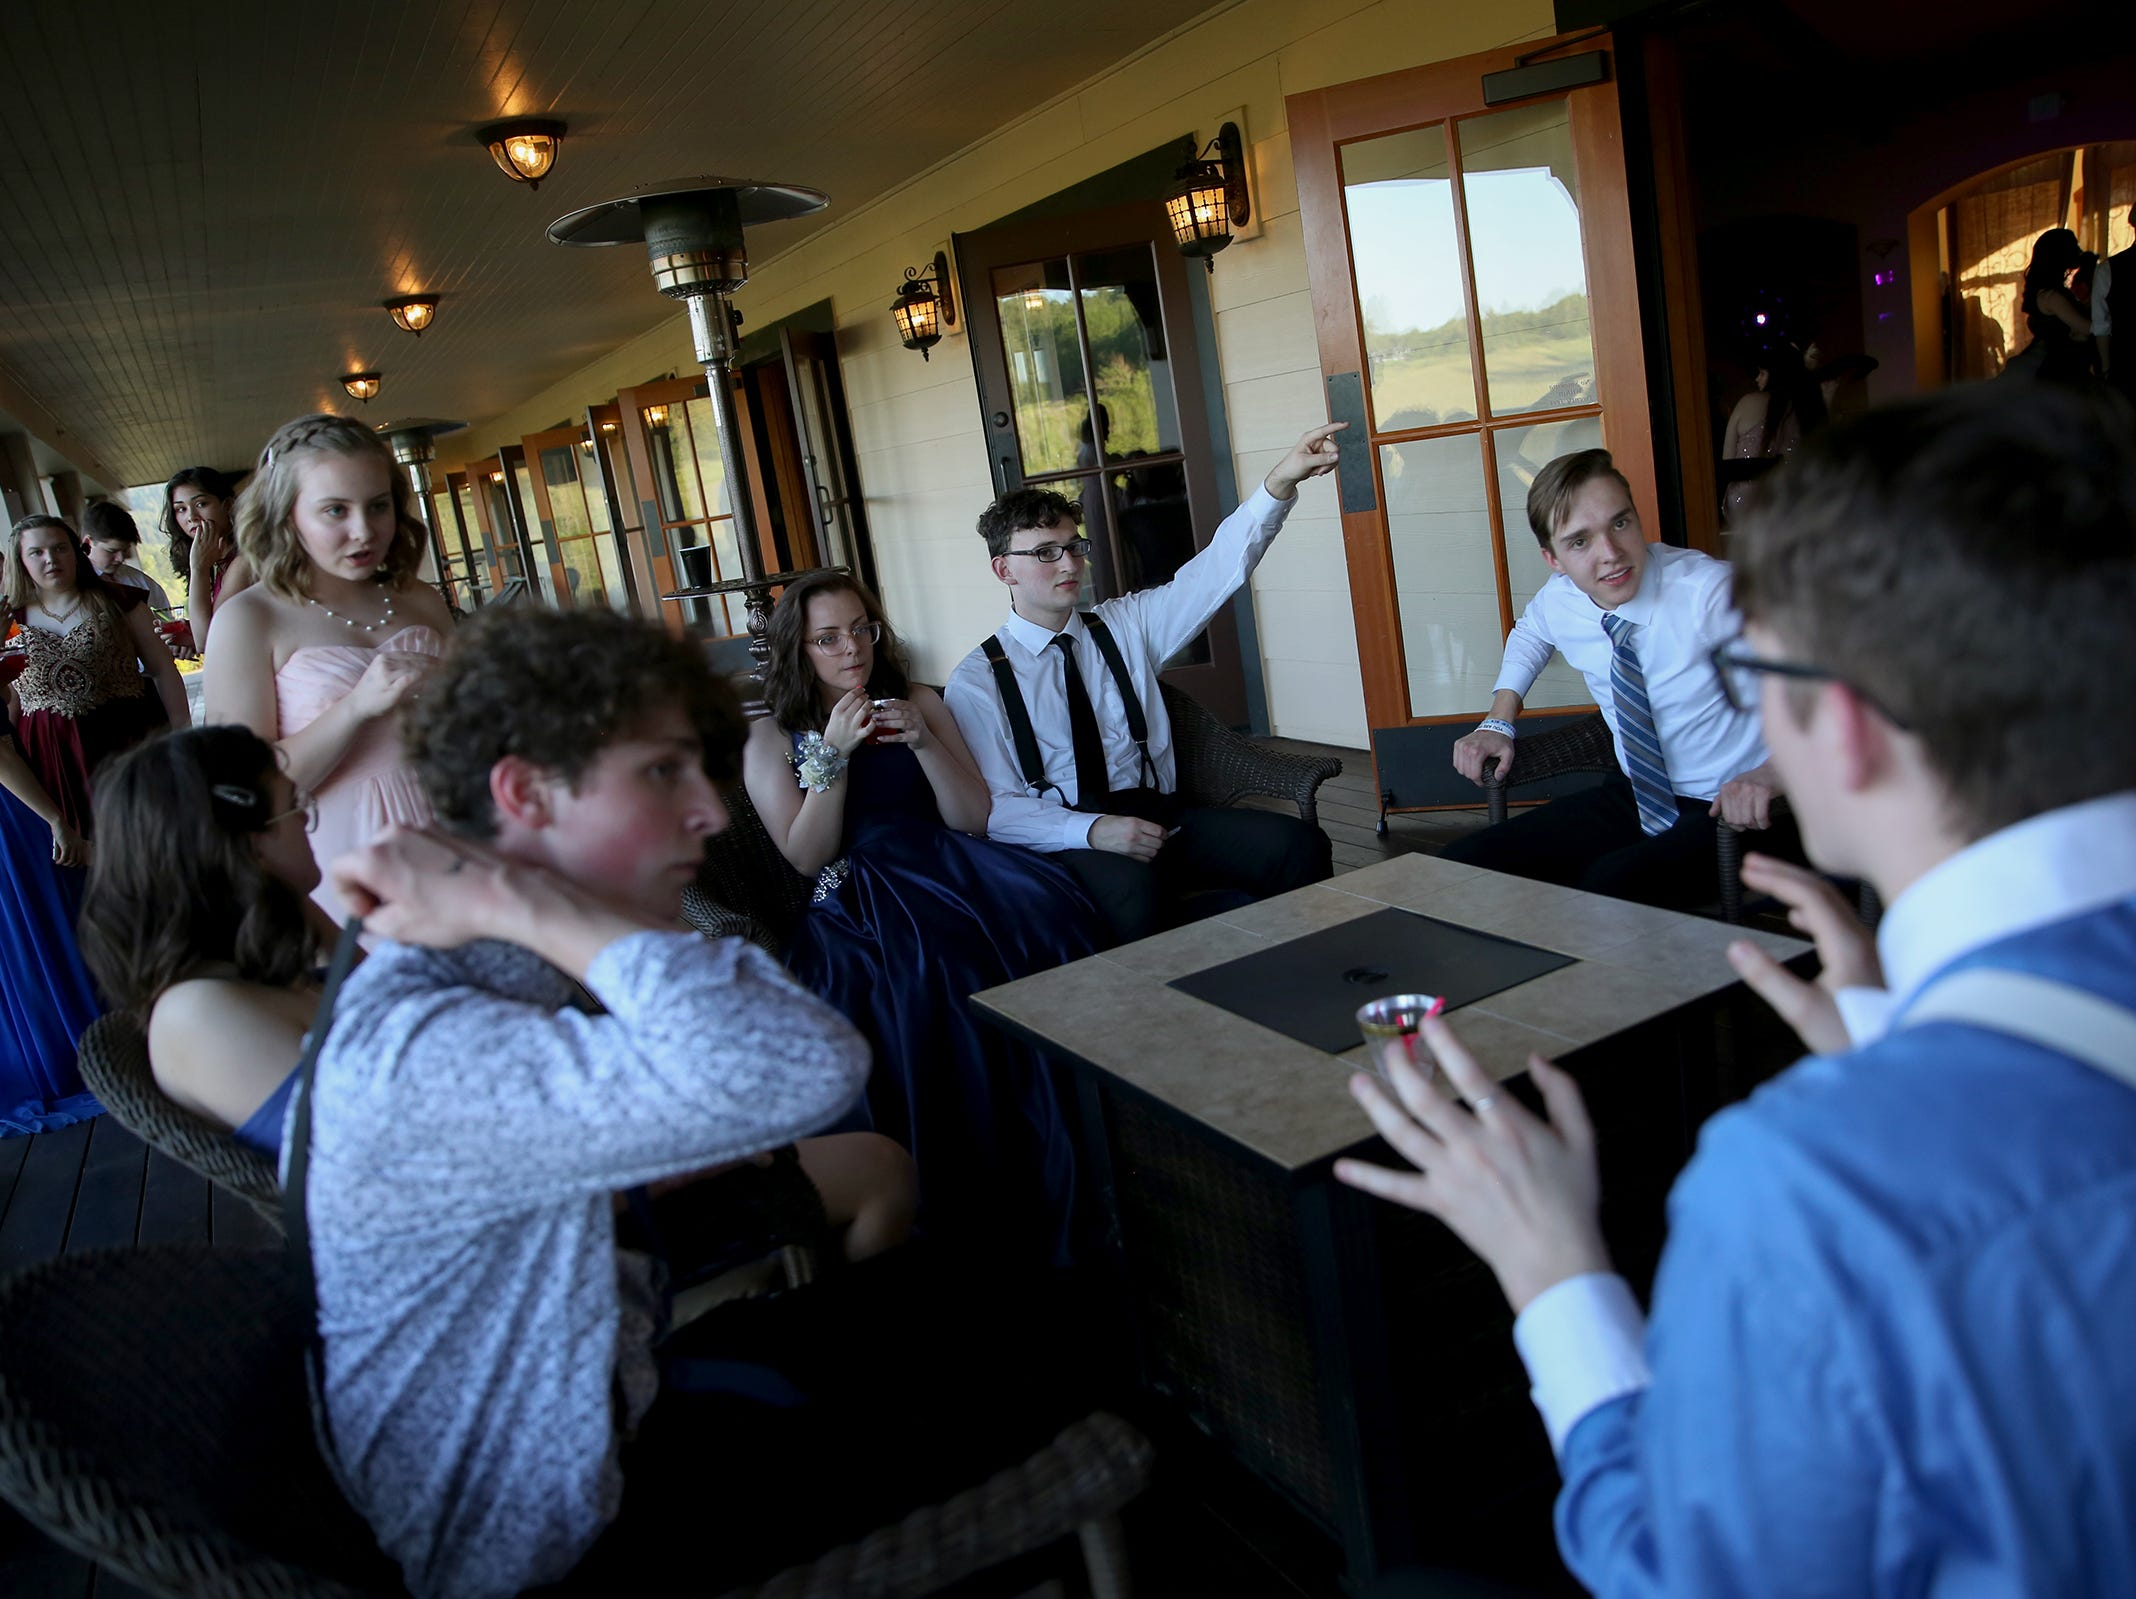 Students hang out outside during the Sprague High School prom at Zenith Vineyard in West Salem on May 10, 2019.